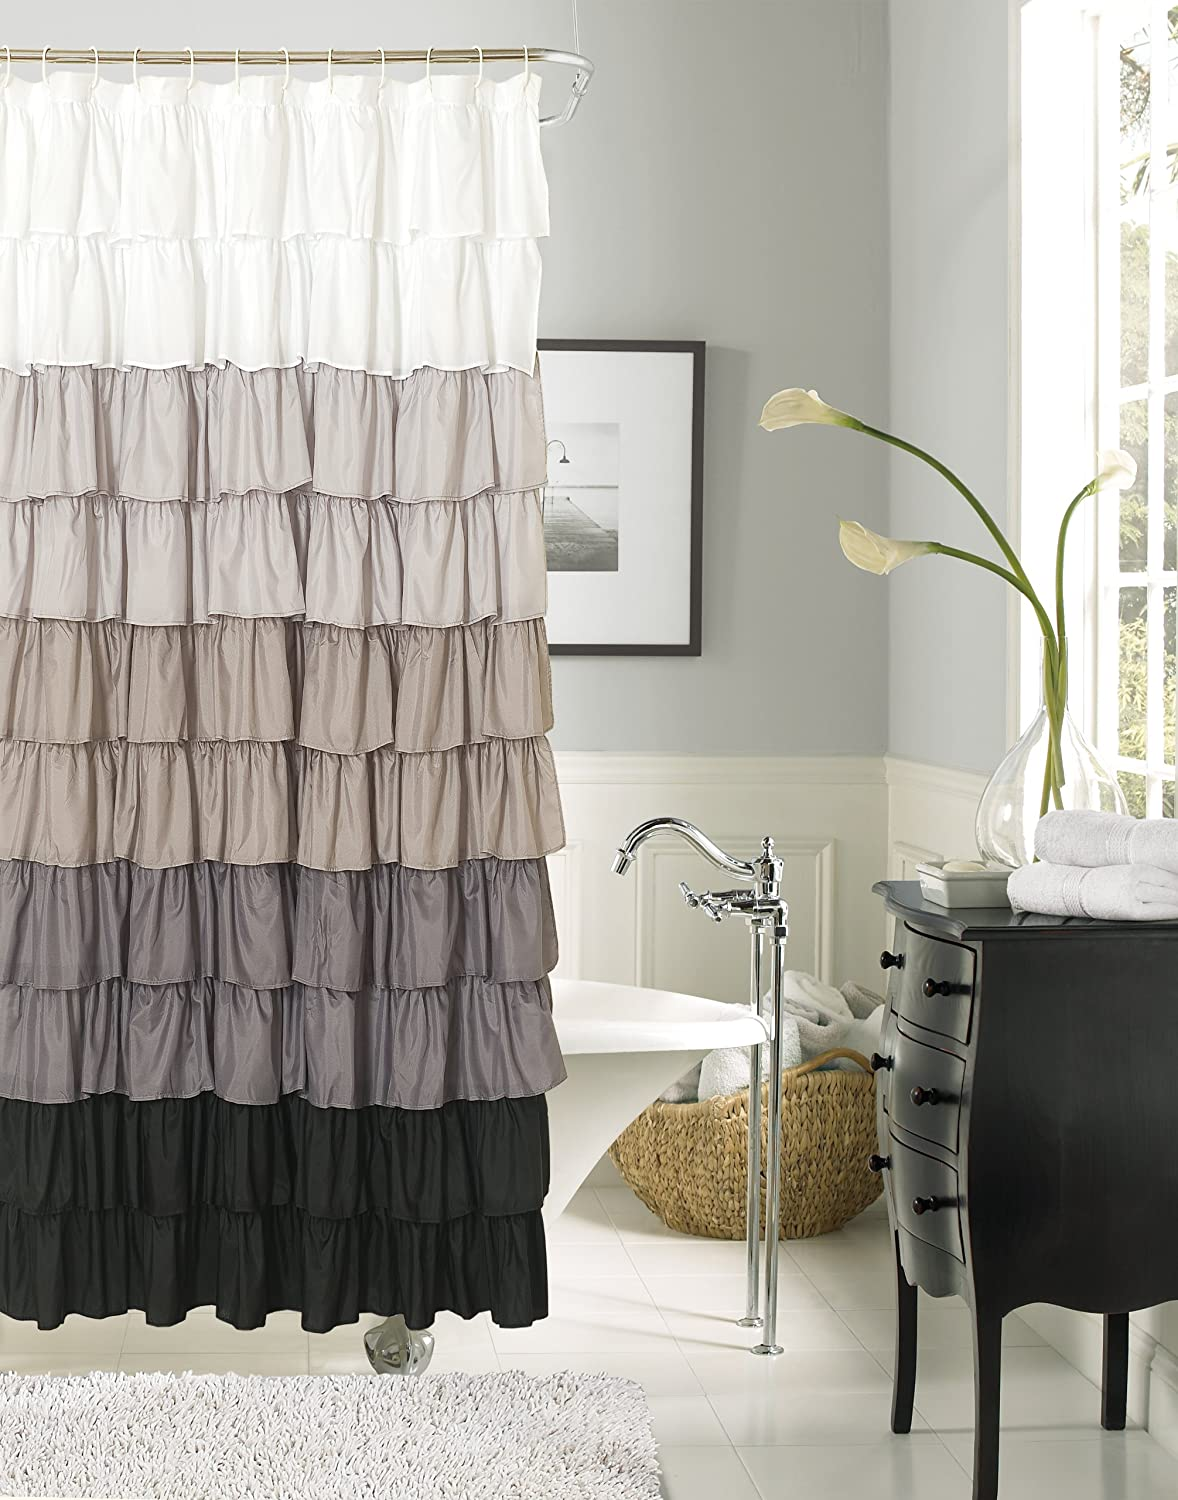 Black and white curtains - Amazon Com Dainty Home Flamenco Ruffled Shower Curtain 72 By 72 Inch Black White Home Kitchen